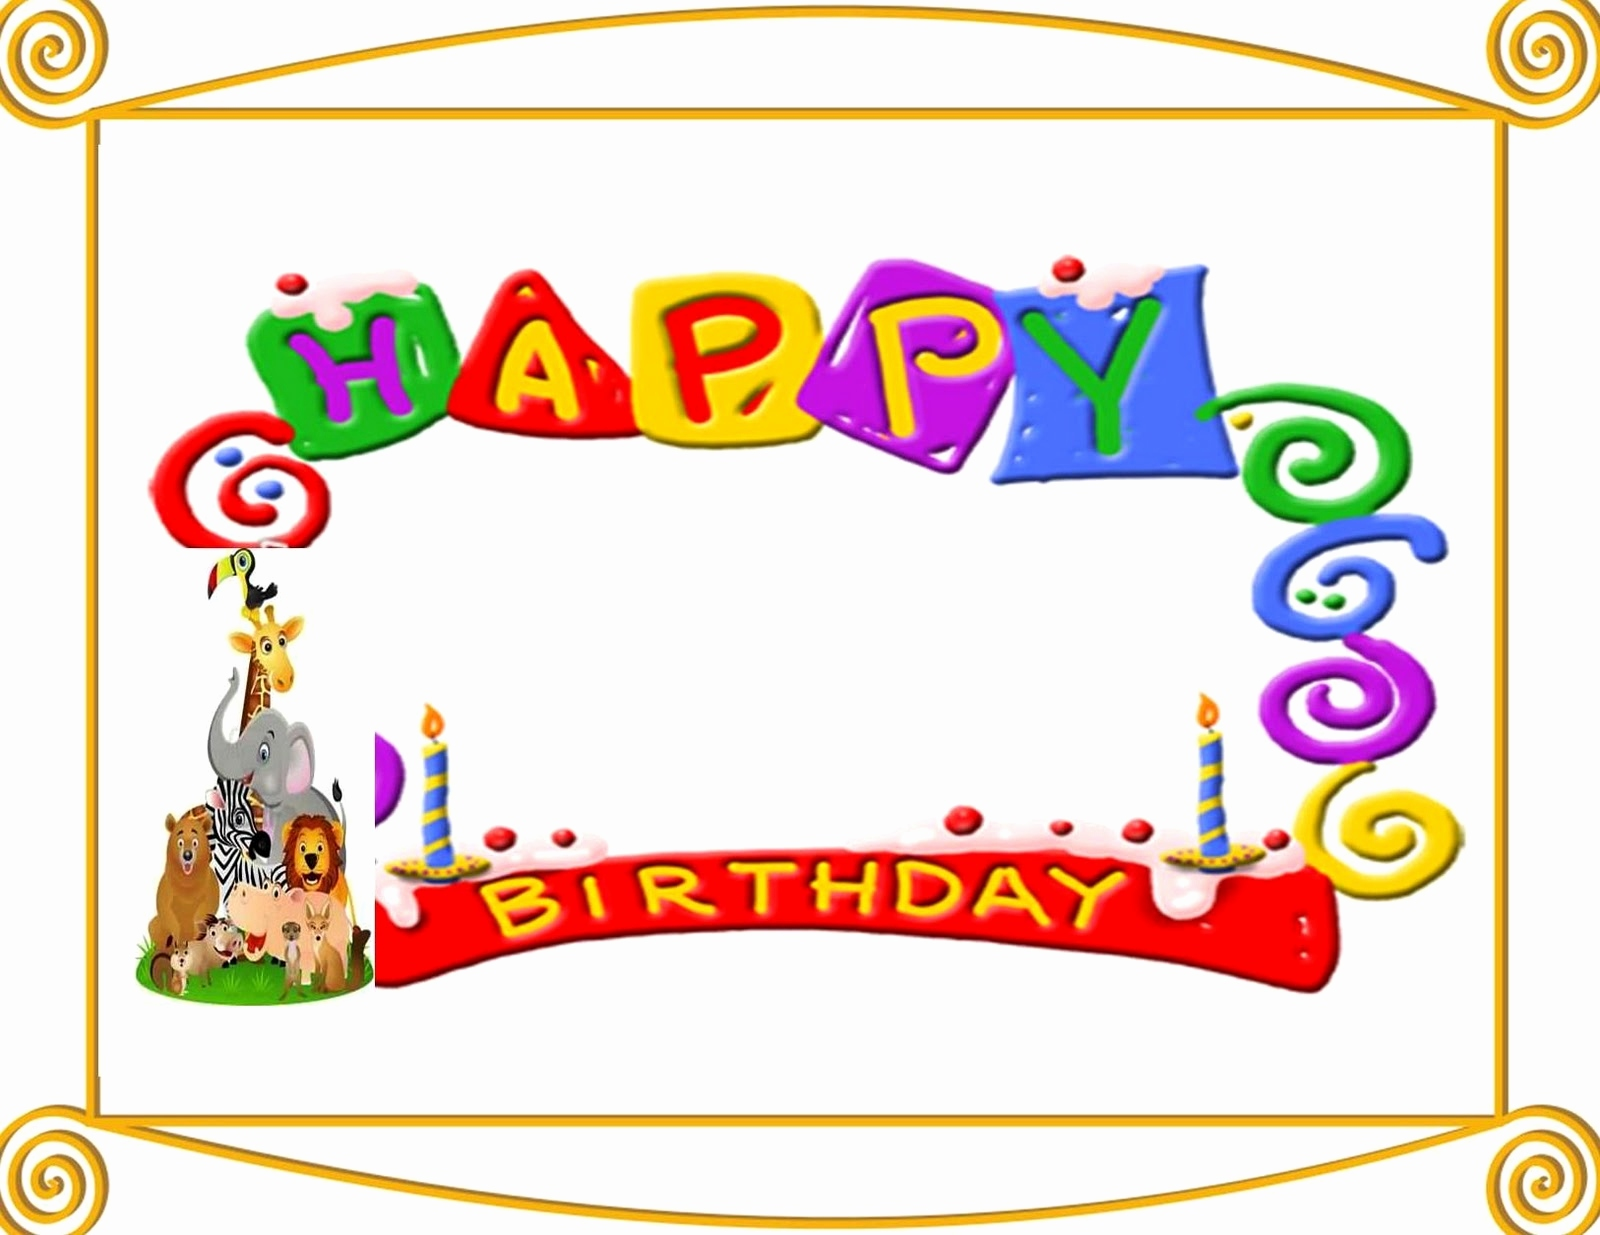 free birthday downloads cliparts ; birthday-cards-for-sister-free-download-best-of-cards-clipart-happy-birthday-pencil-and-in-color-cards-clipart-of-birthday-cards-for-sister-free-download